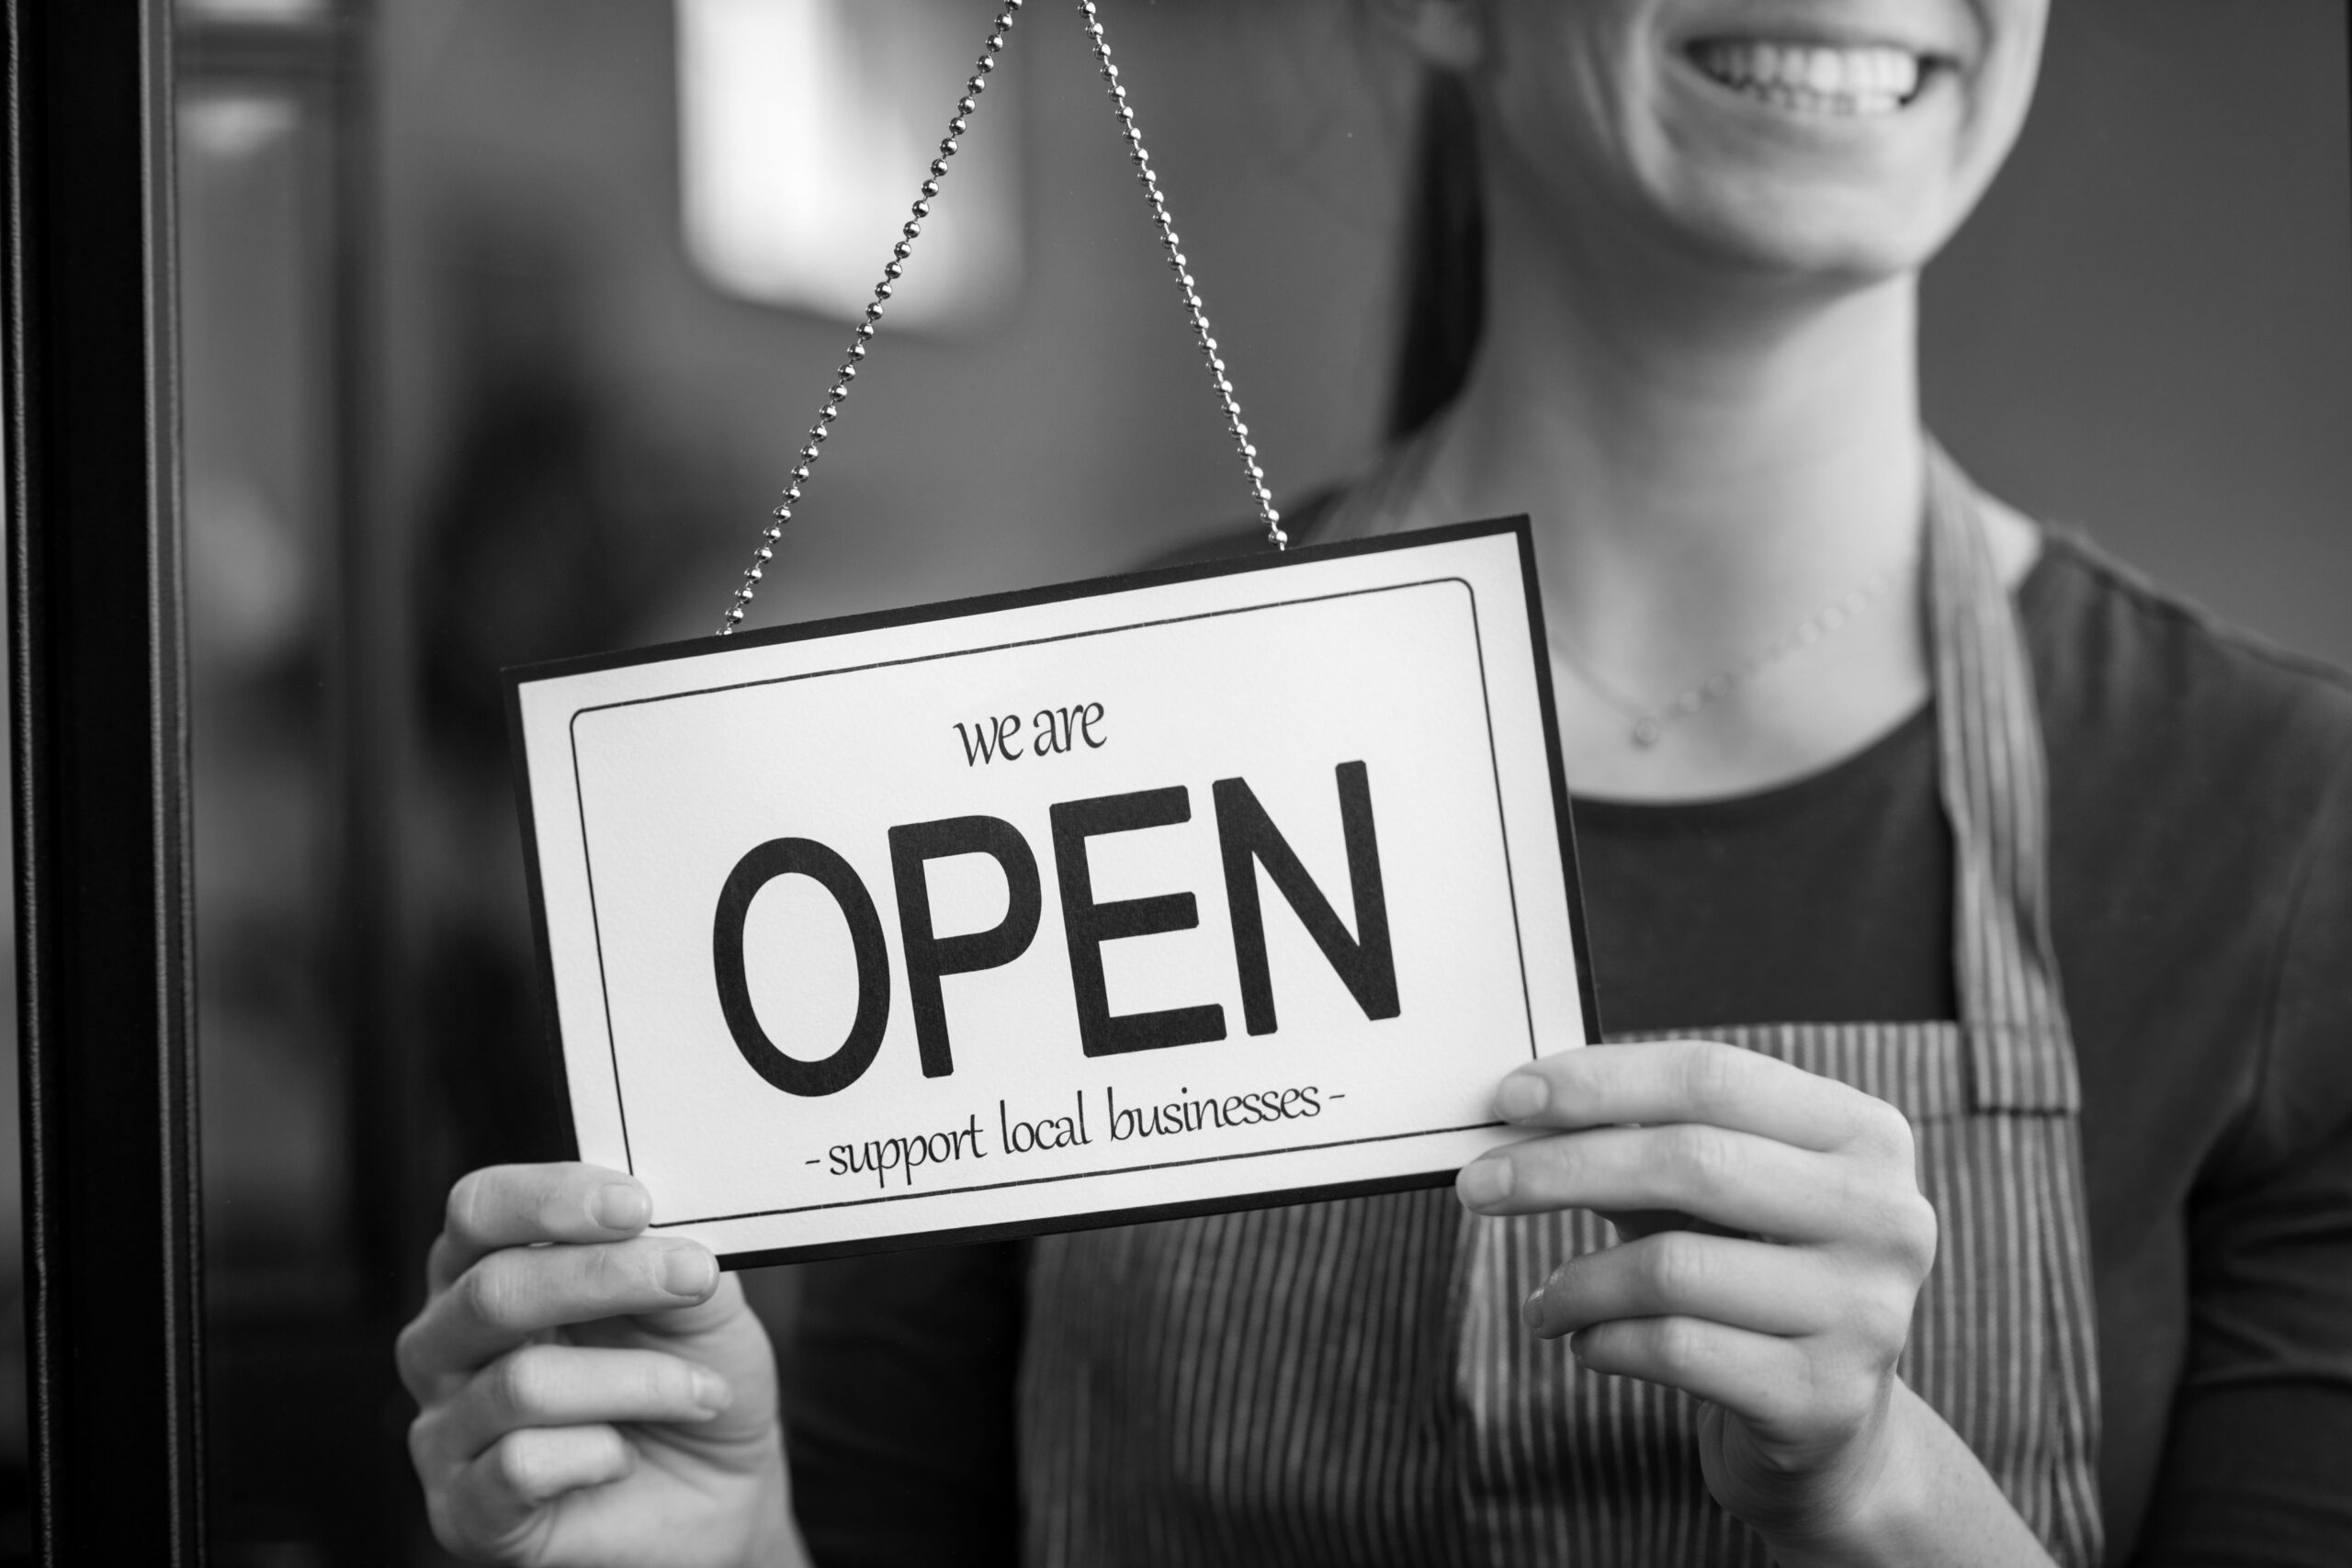 woman smiling with open sign